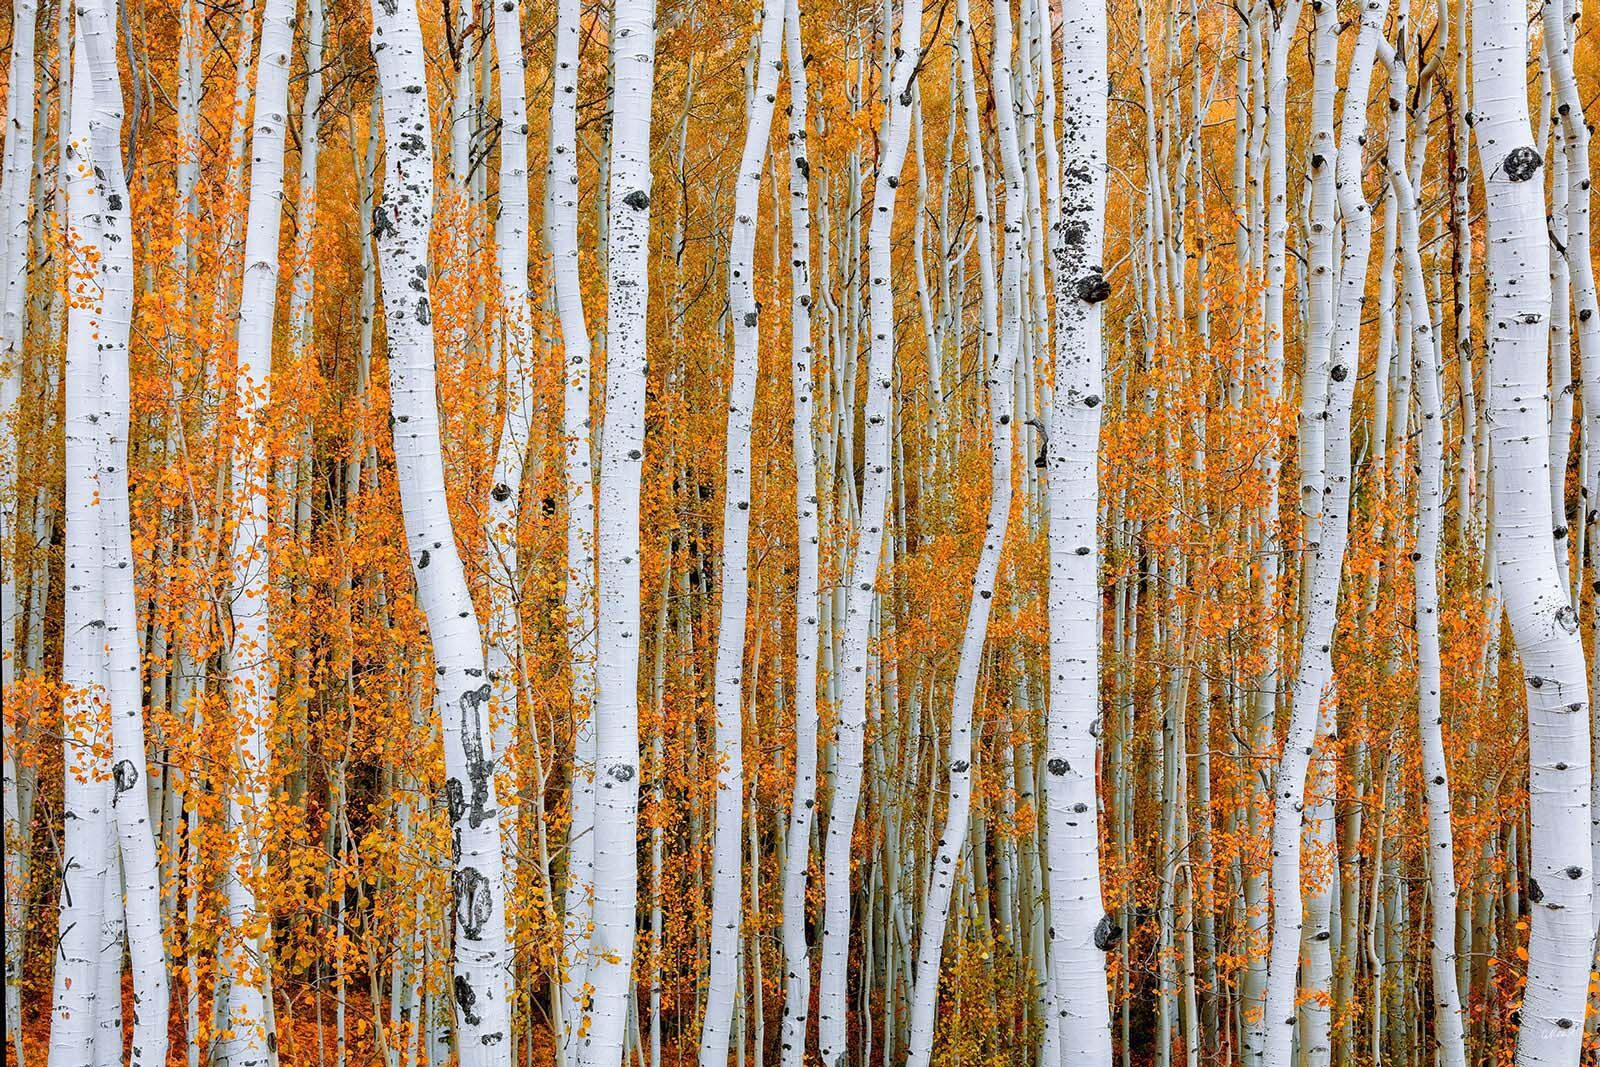 Aspen, Trees, Fine Art, Limited Edition, Orange, Crush, Quaking, North America, quake, tremble, branches, trunk, Telluride, Colorado, Autumn, Fall Color, photo